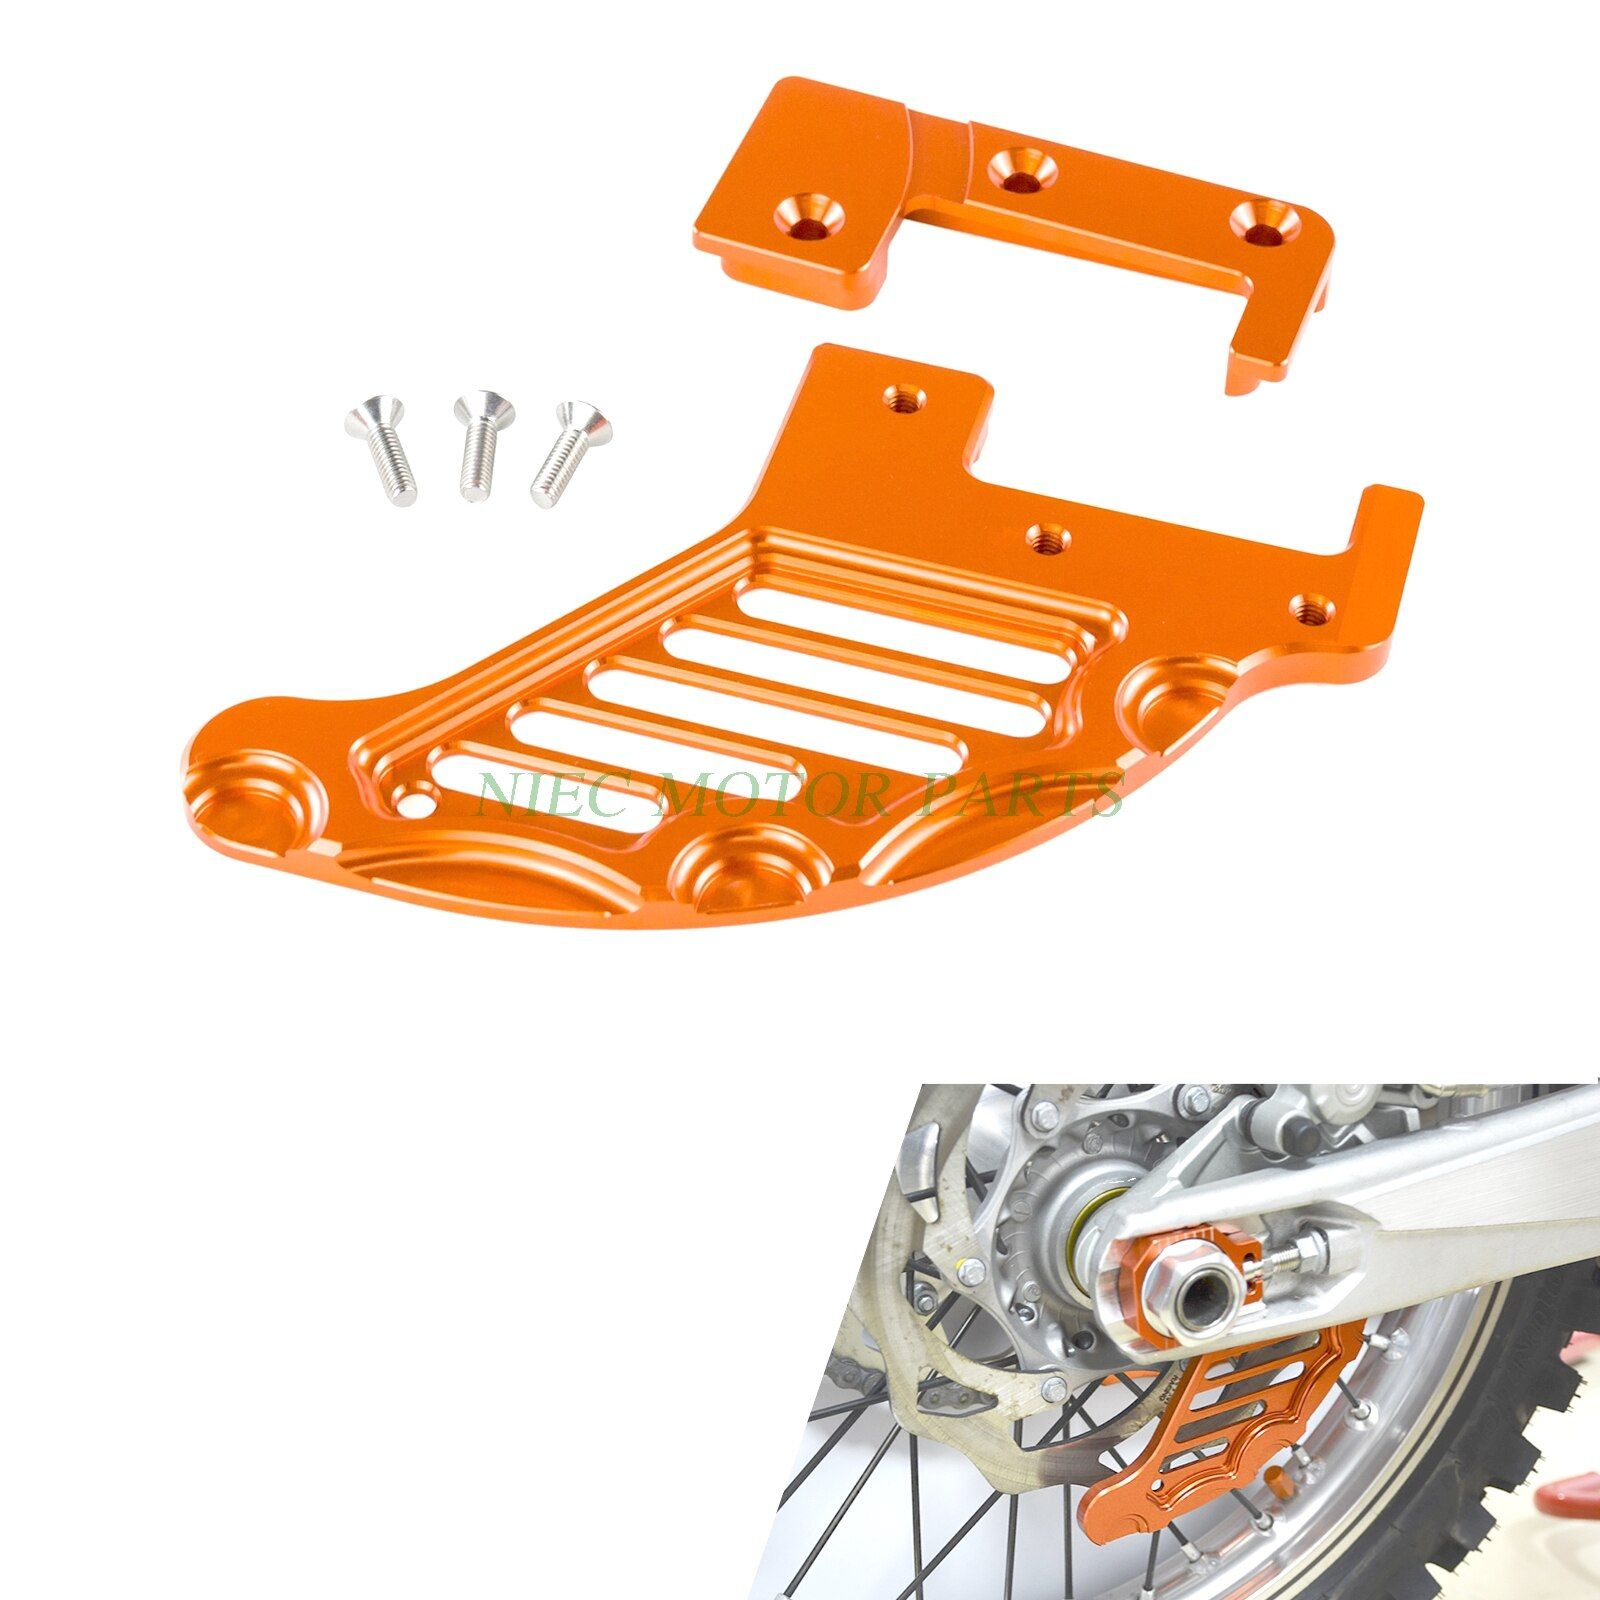 NICECNC Rear Brake Disc Guard Protector For KTM 85 125 150 200 250 300 350 400 450 525 530 560 EXC EXCF SX SXF XC XCF XCW SMR